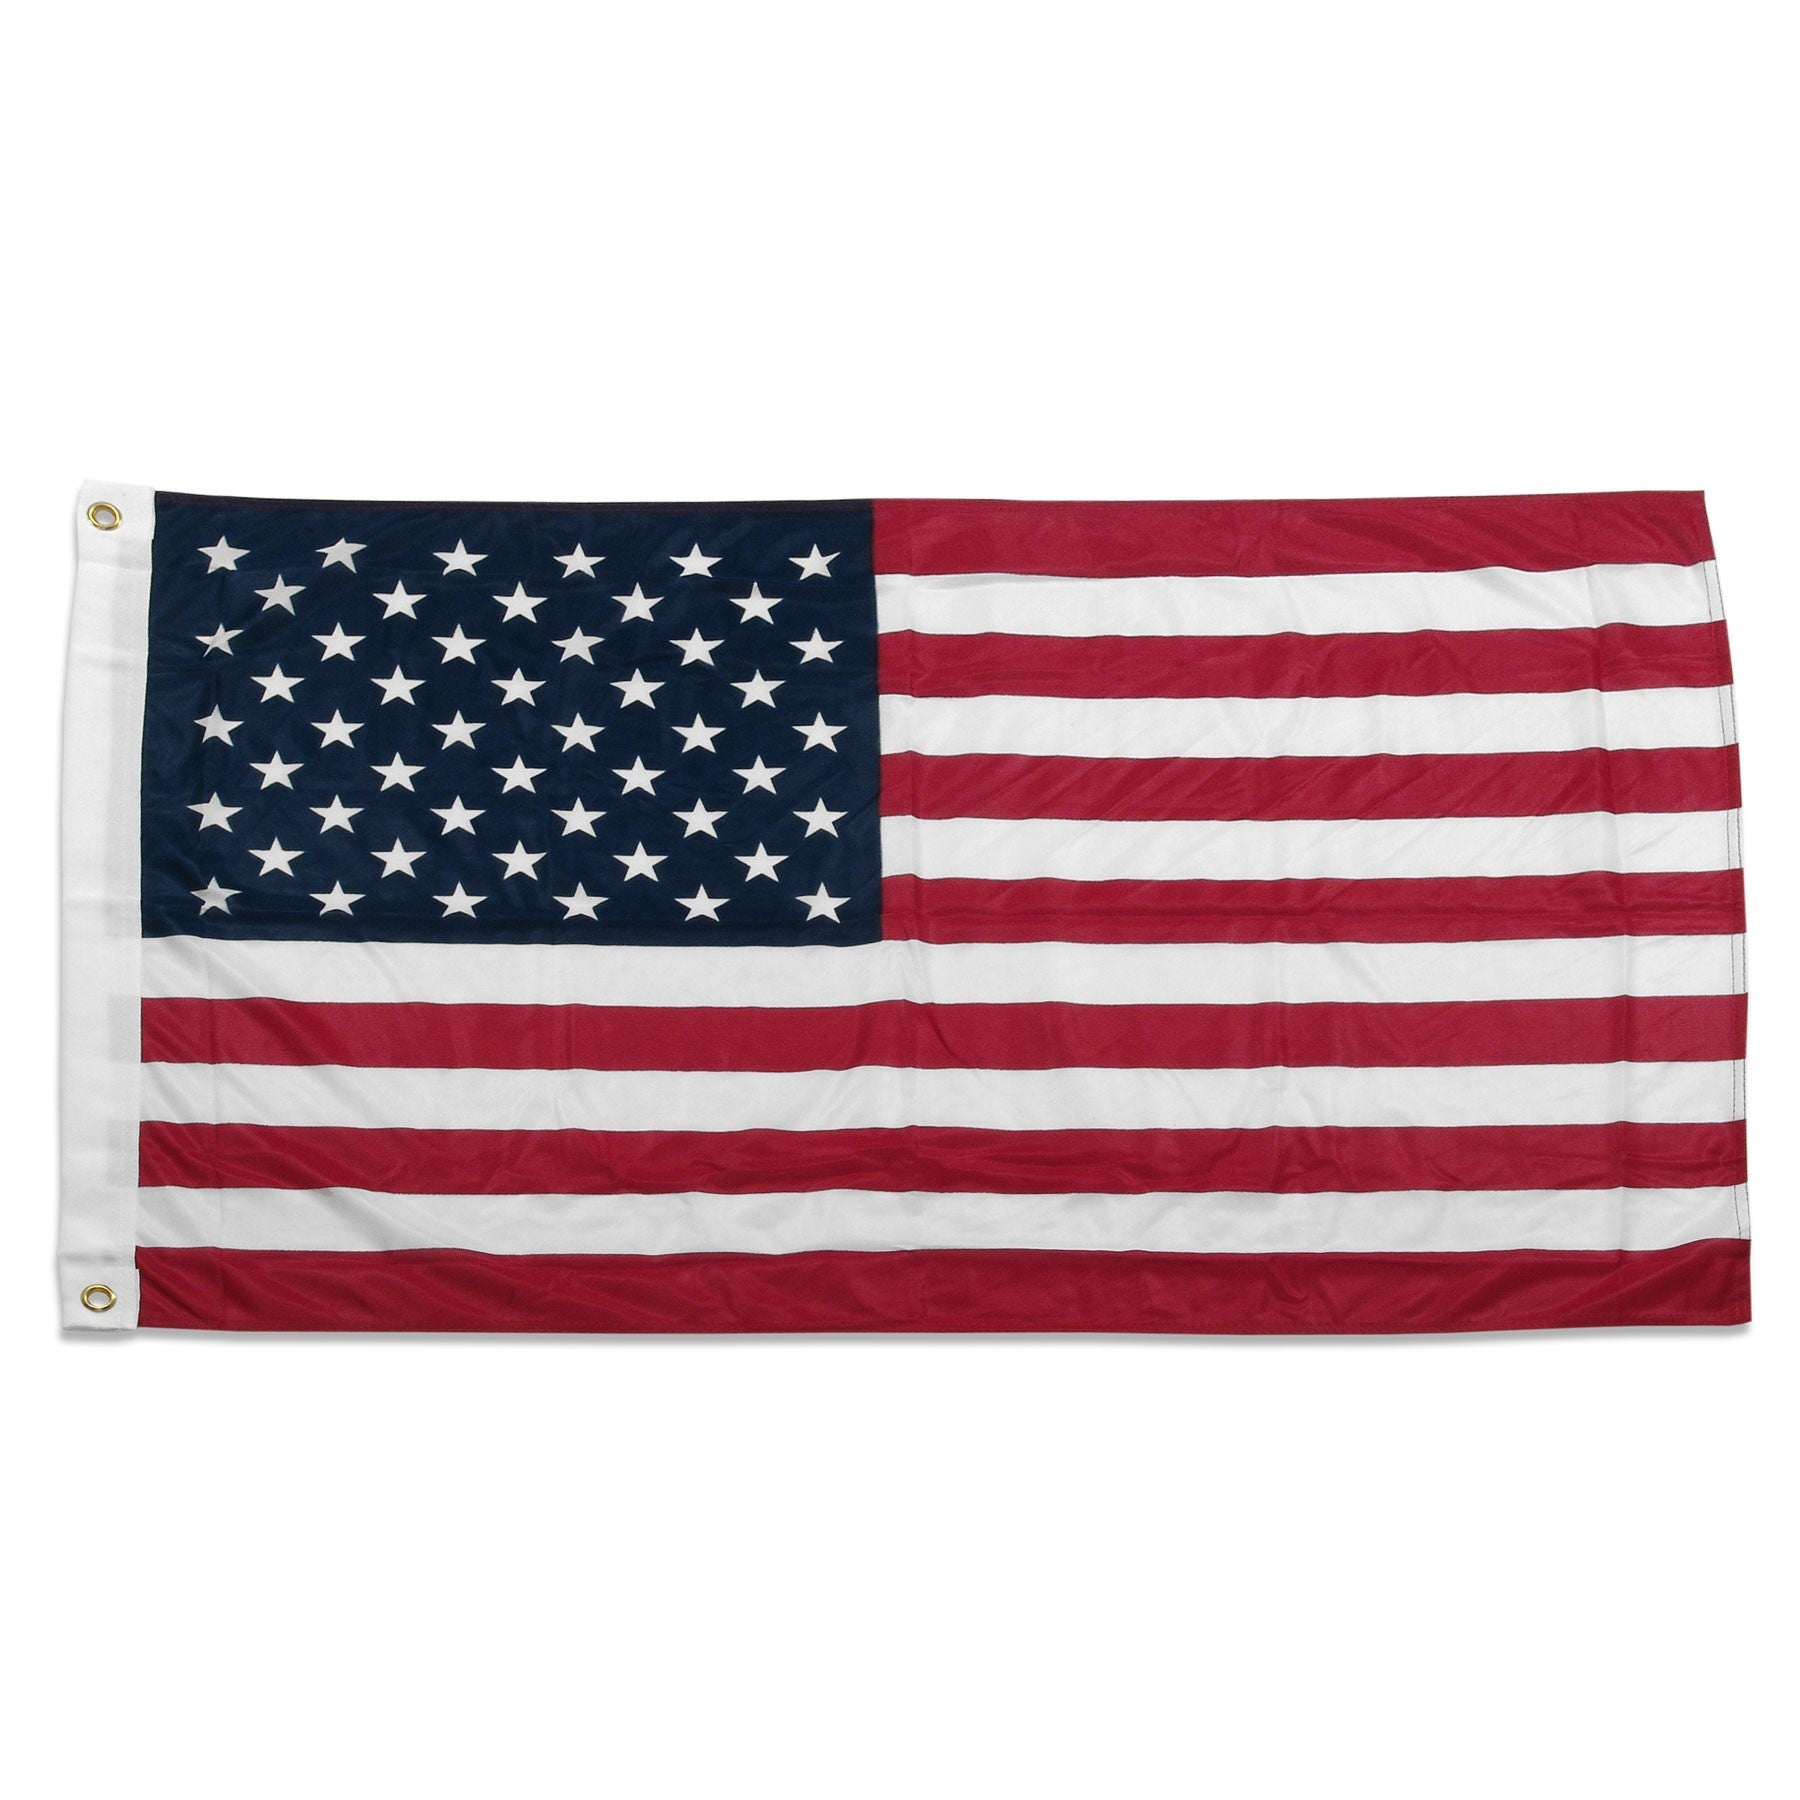 US flags for sale